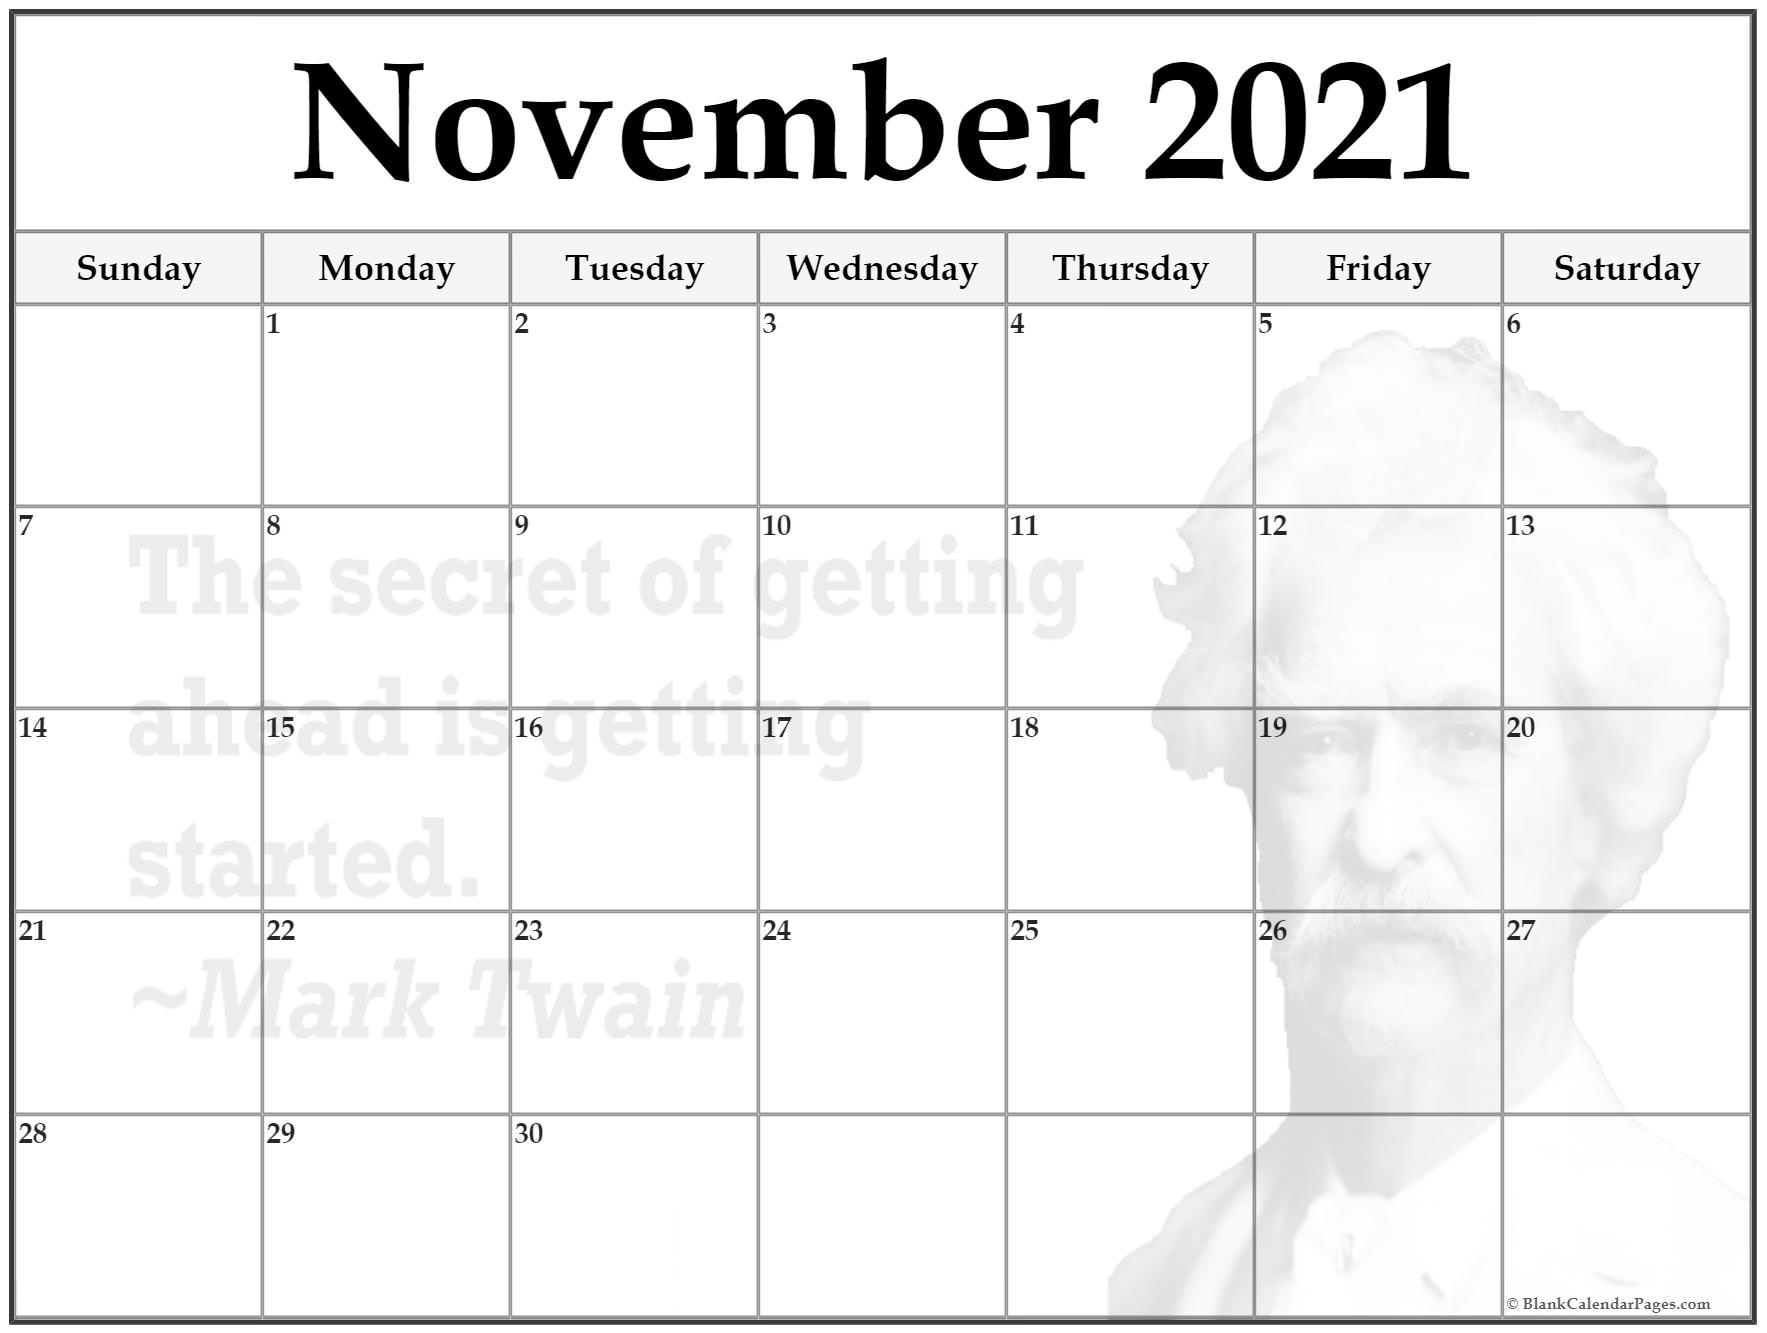 November 2018 printable quote calendar template. The secret of getting ahead is getting started. ~Mark Twain